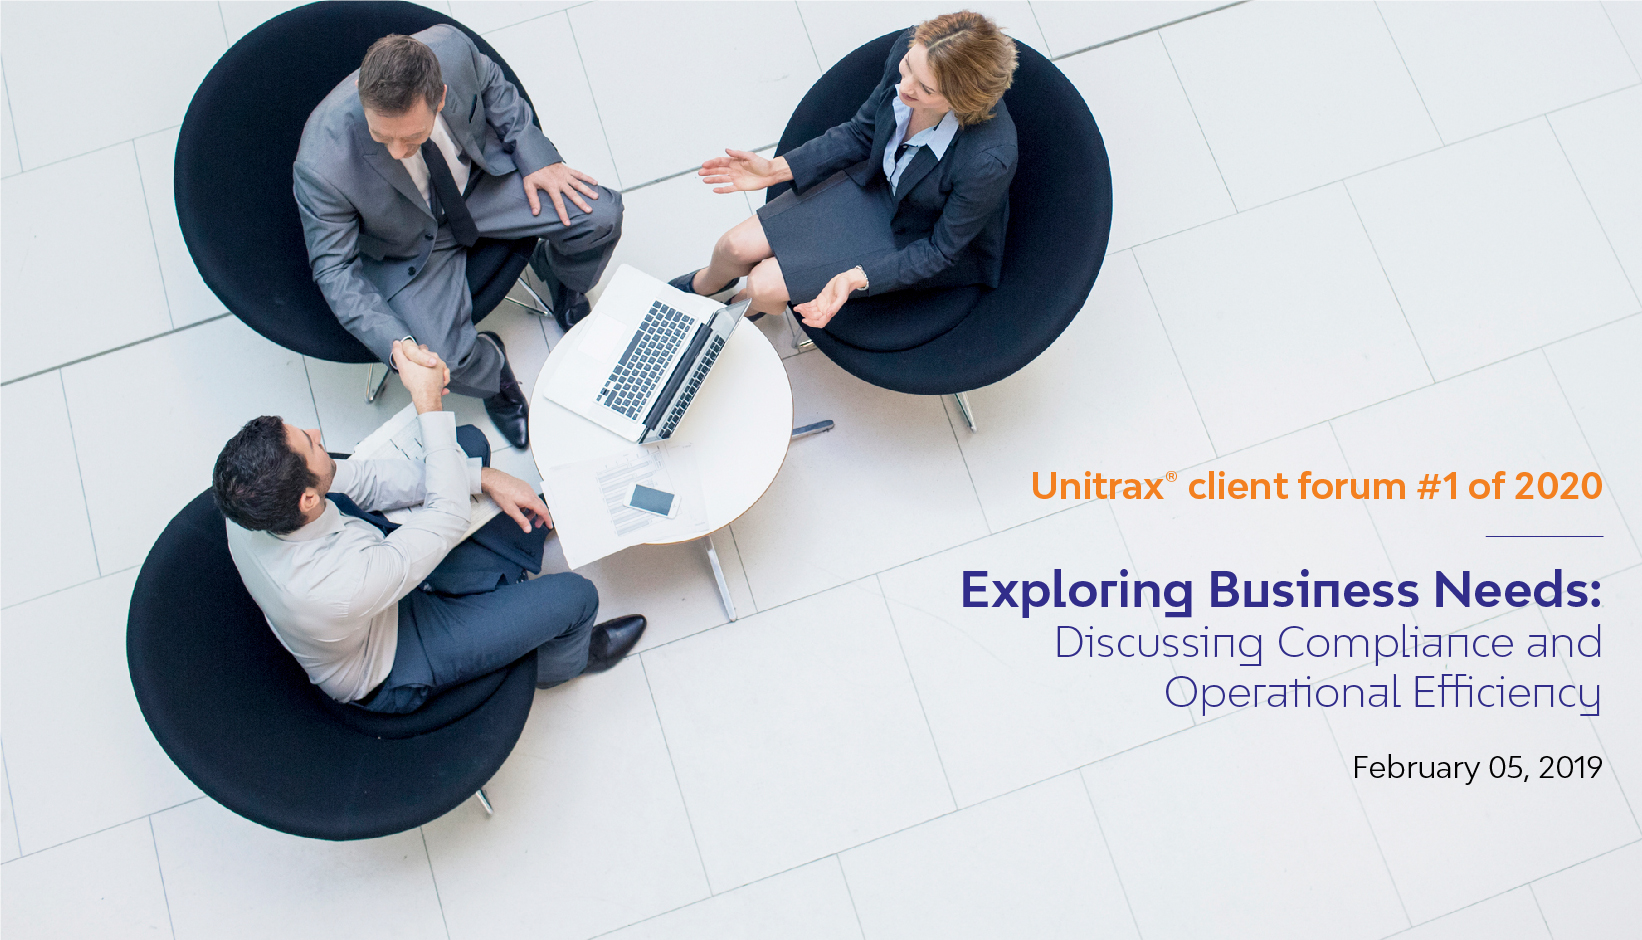 Unitrax® Client Forum #1 of 2020